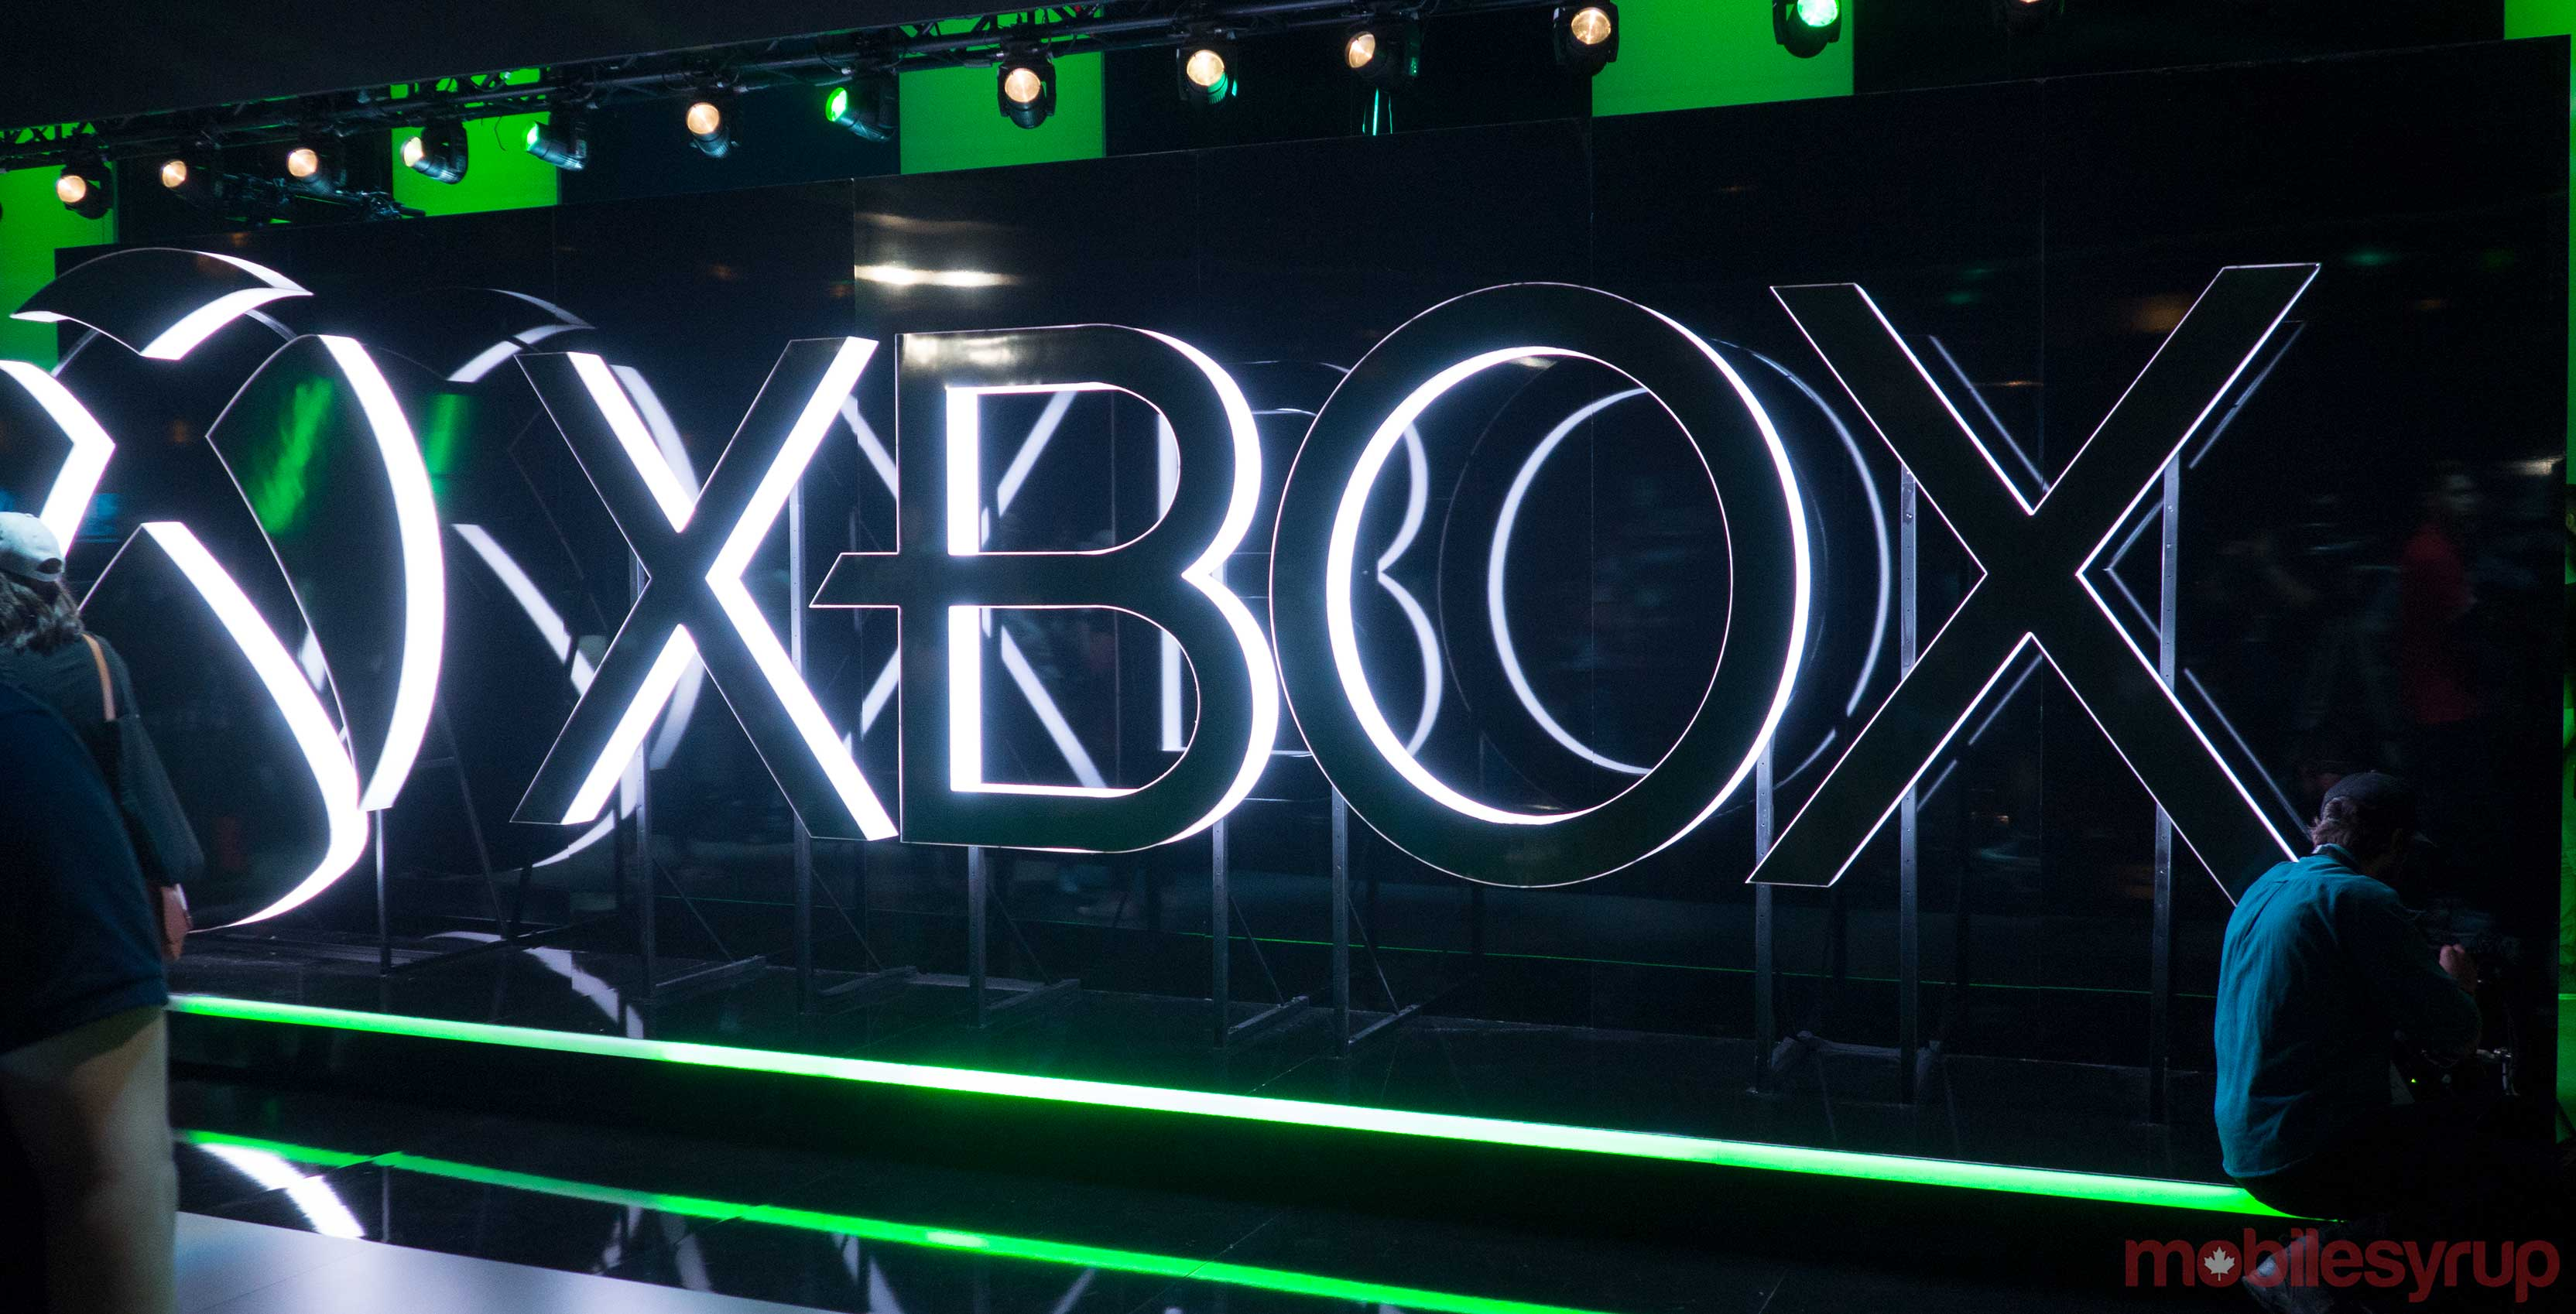 What did Xbox boss say?